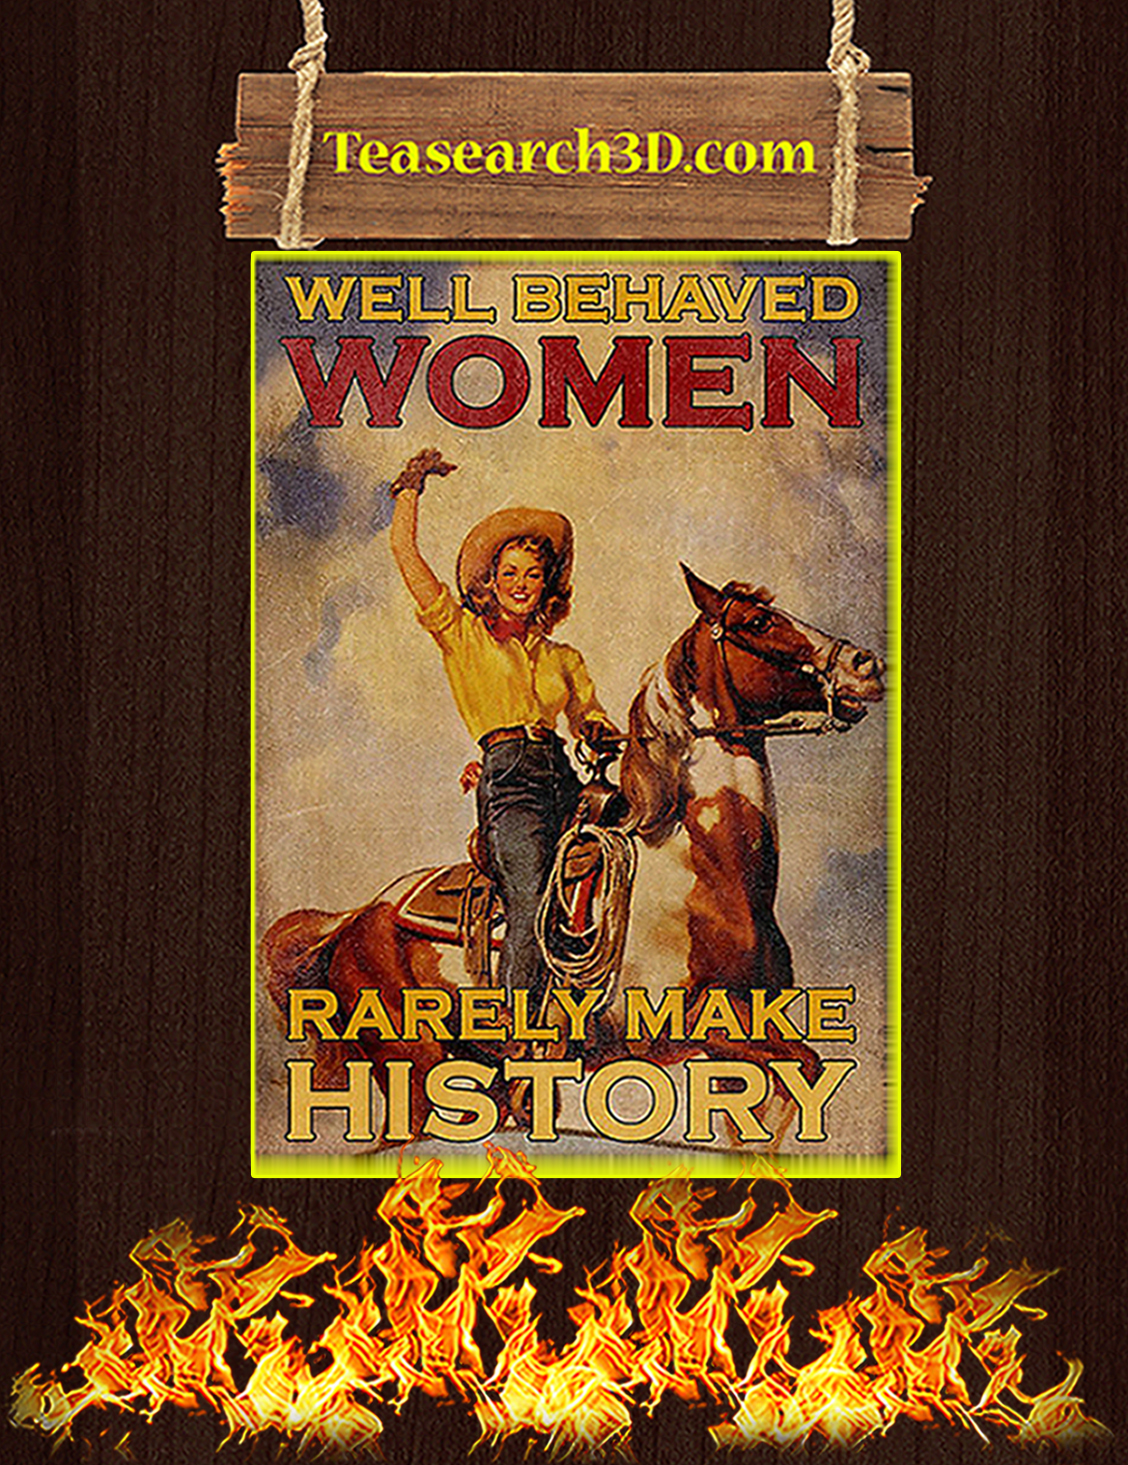 Horse women well behave women rarely make history poster A3